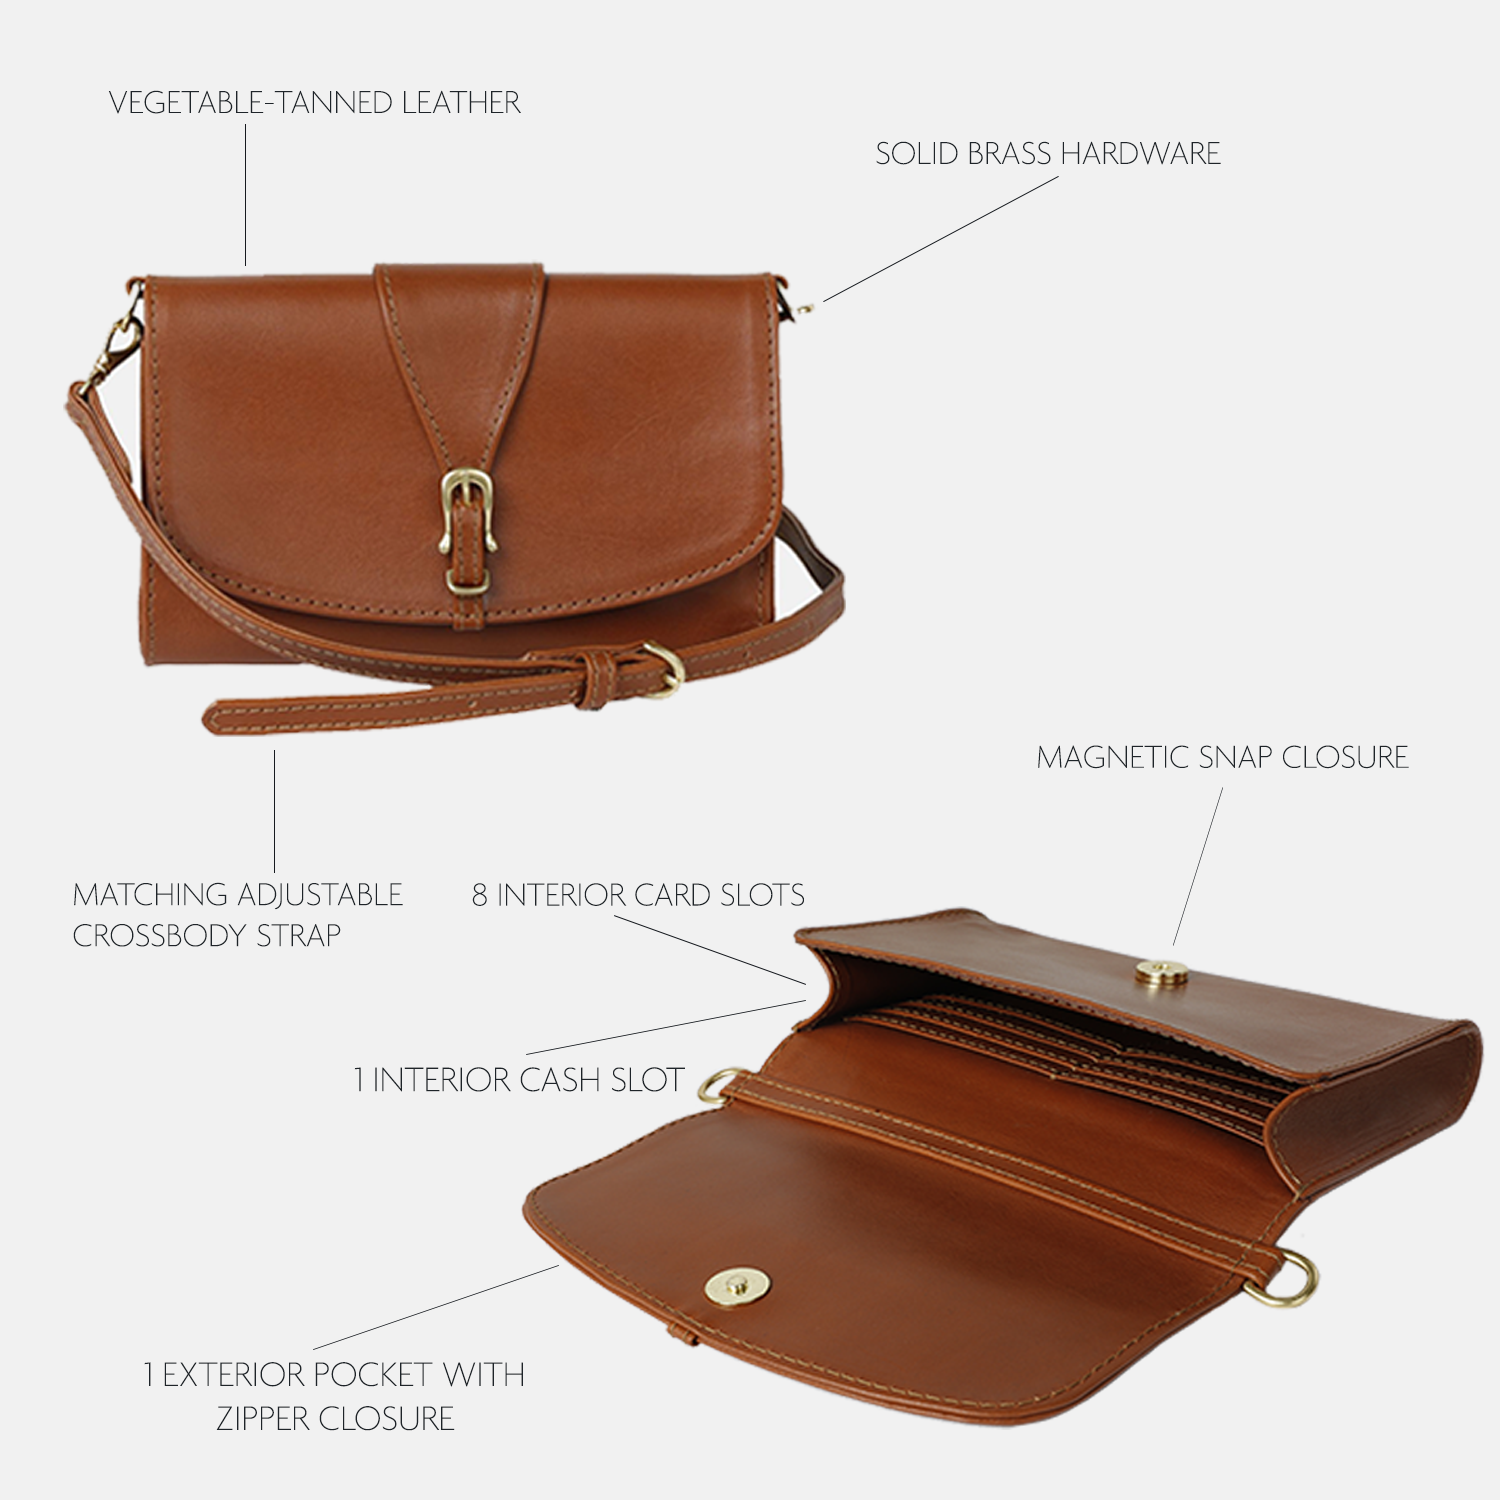 two cognac pennington bags with their features called out in text